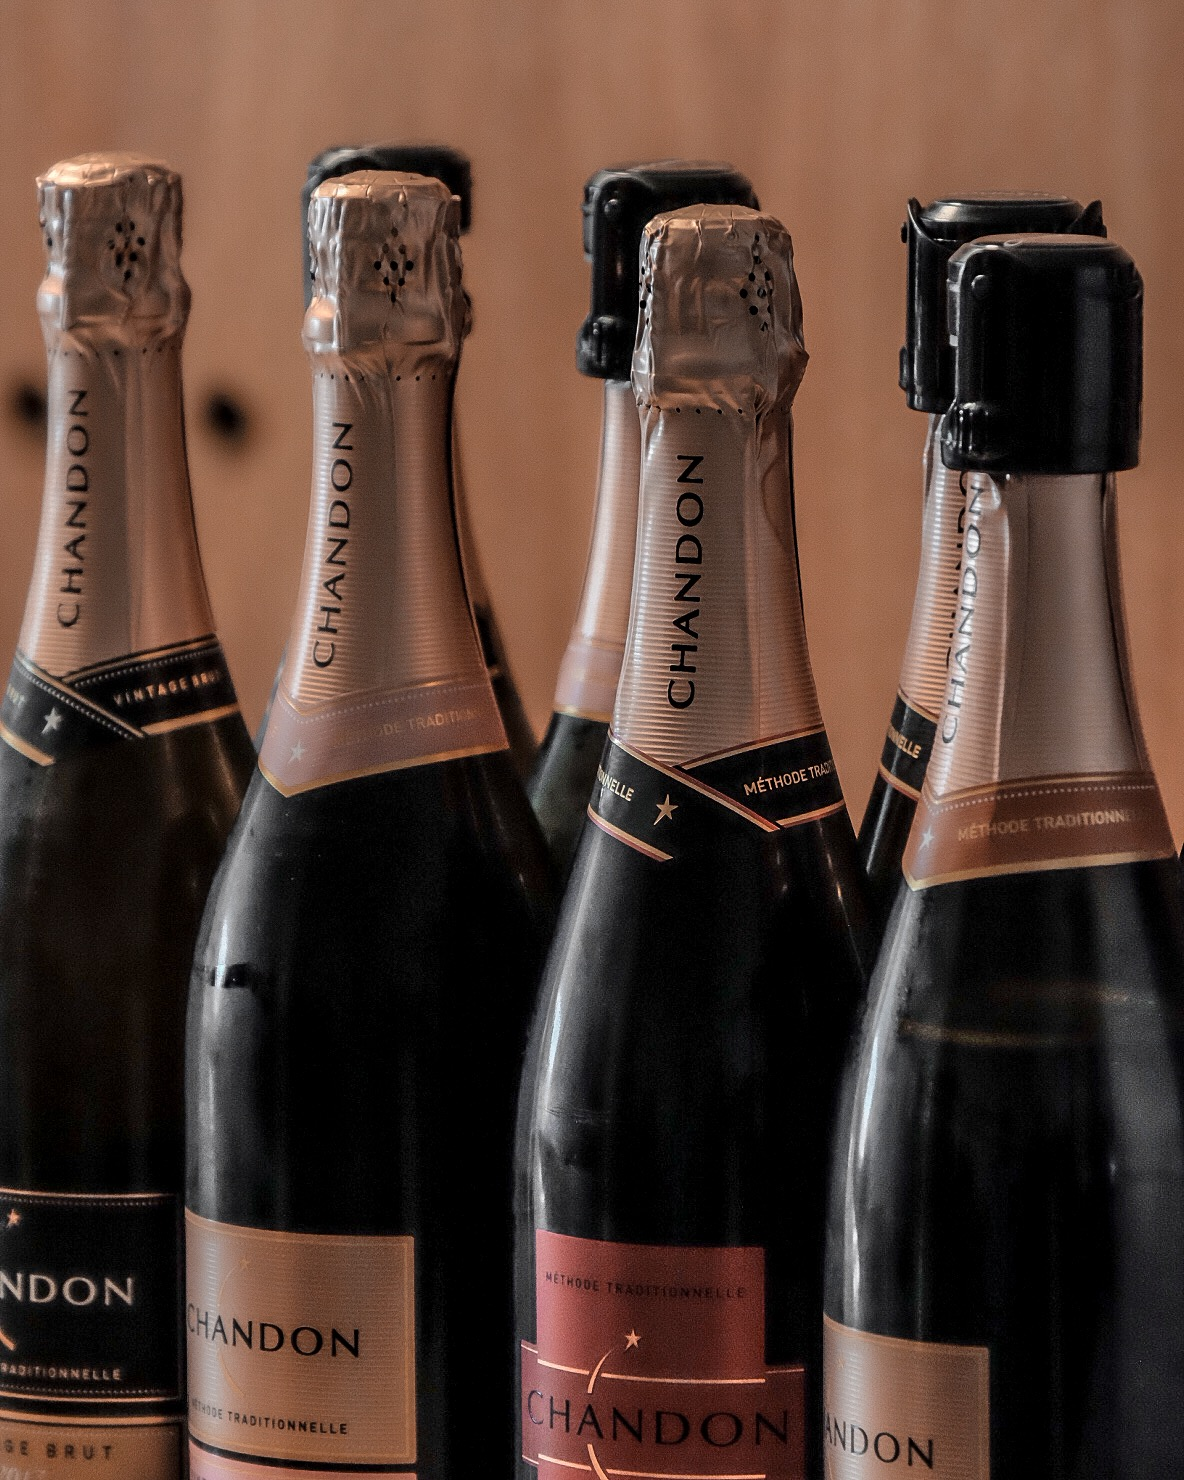 If you've gone on a wine tour in California, chances are you've tried these too. There's a Domaine Chandon Vineyard in Napa Valley, too.